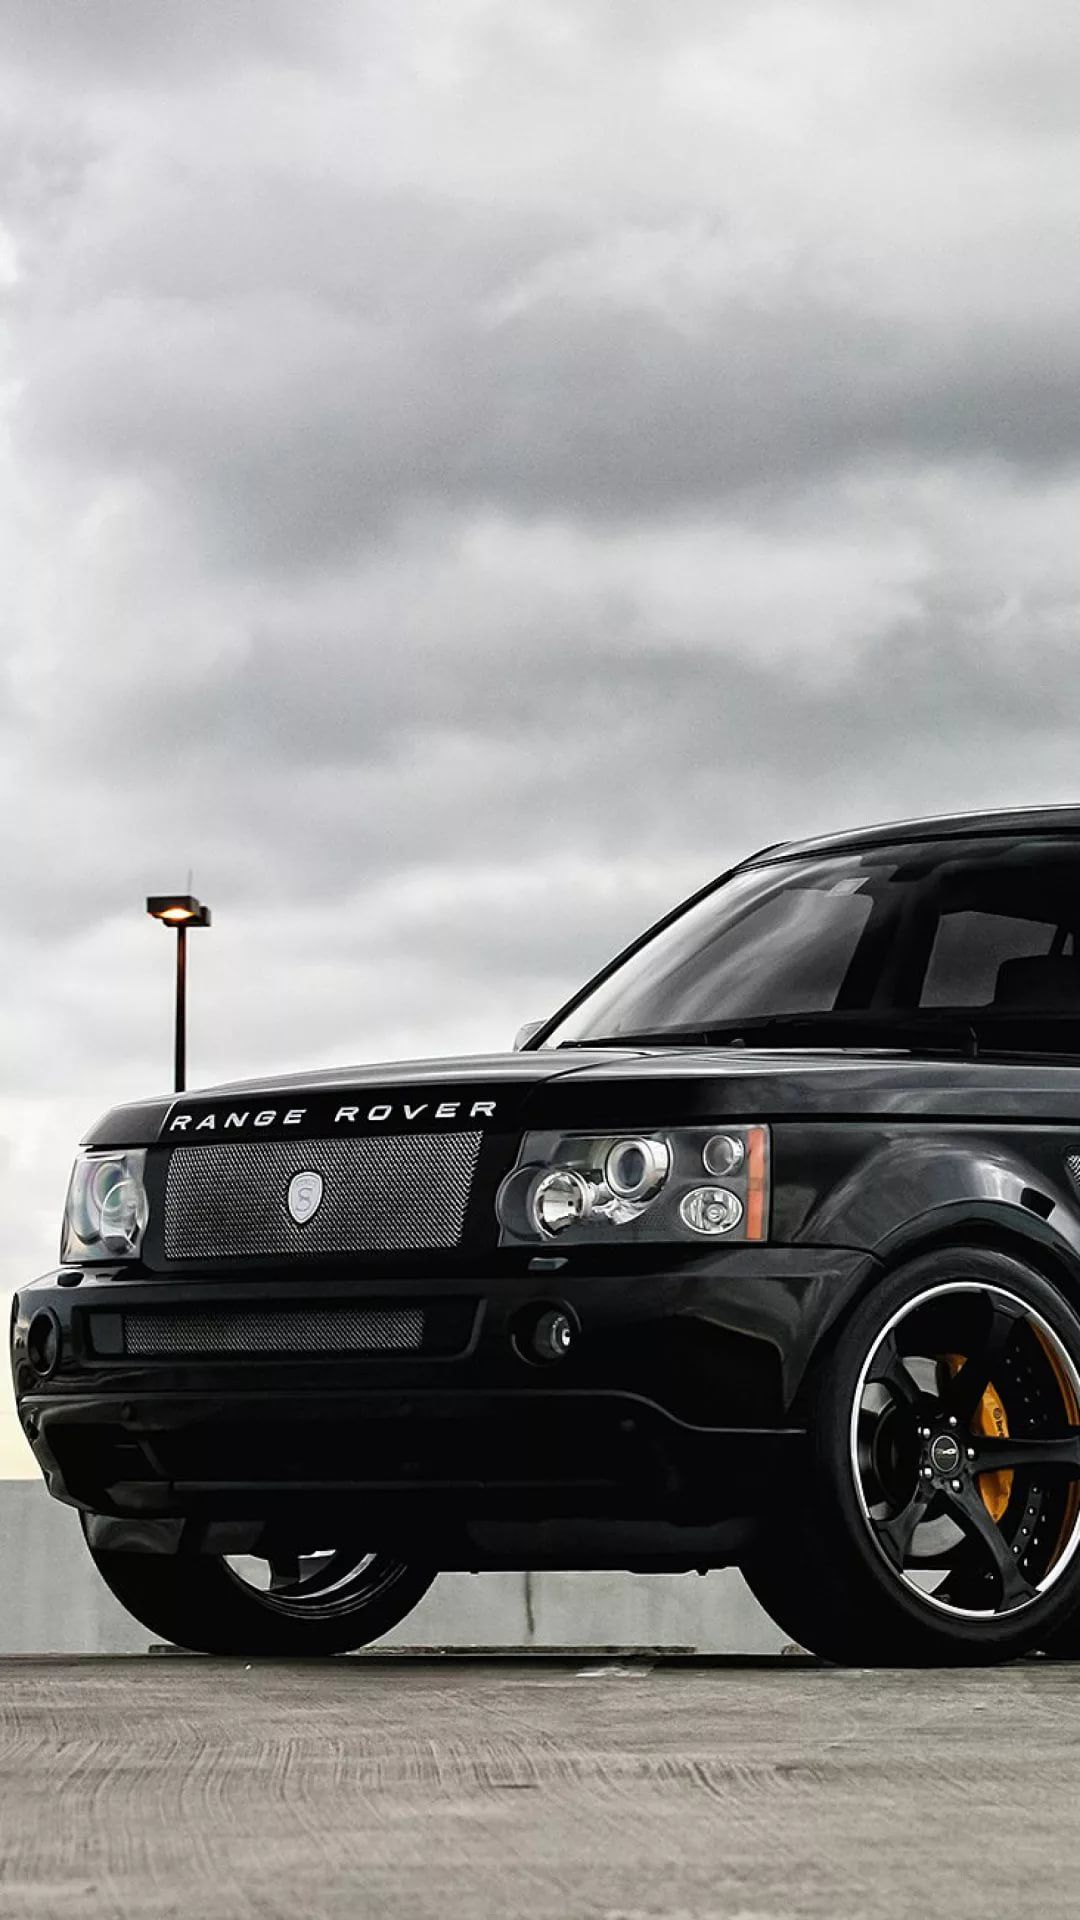 Range Rover wallpaper for mobile